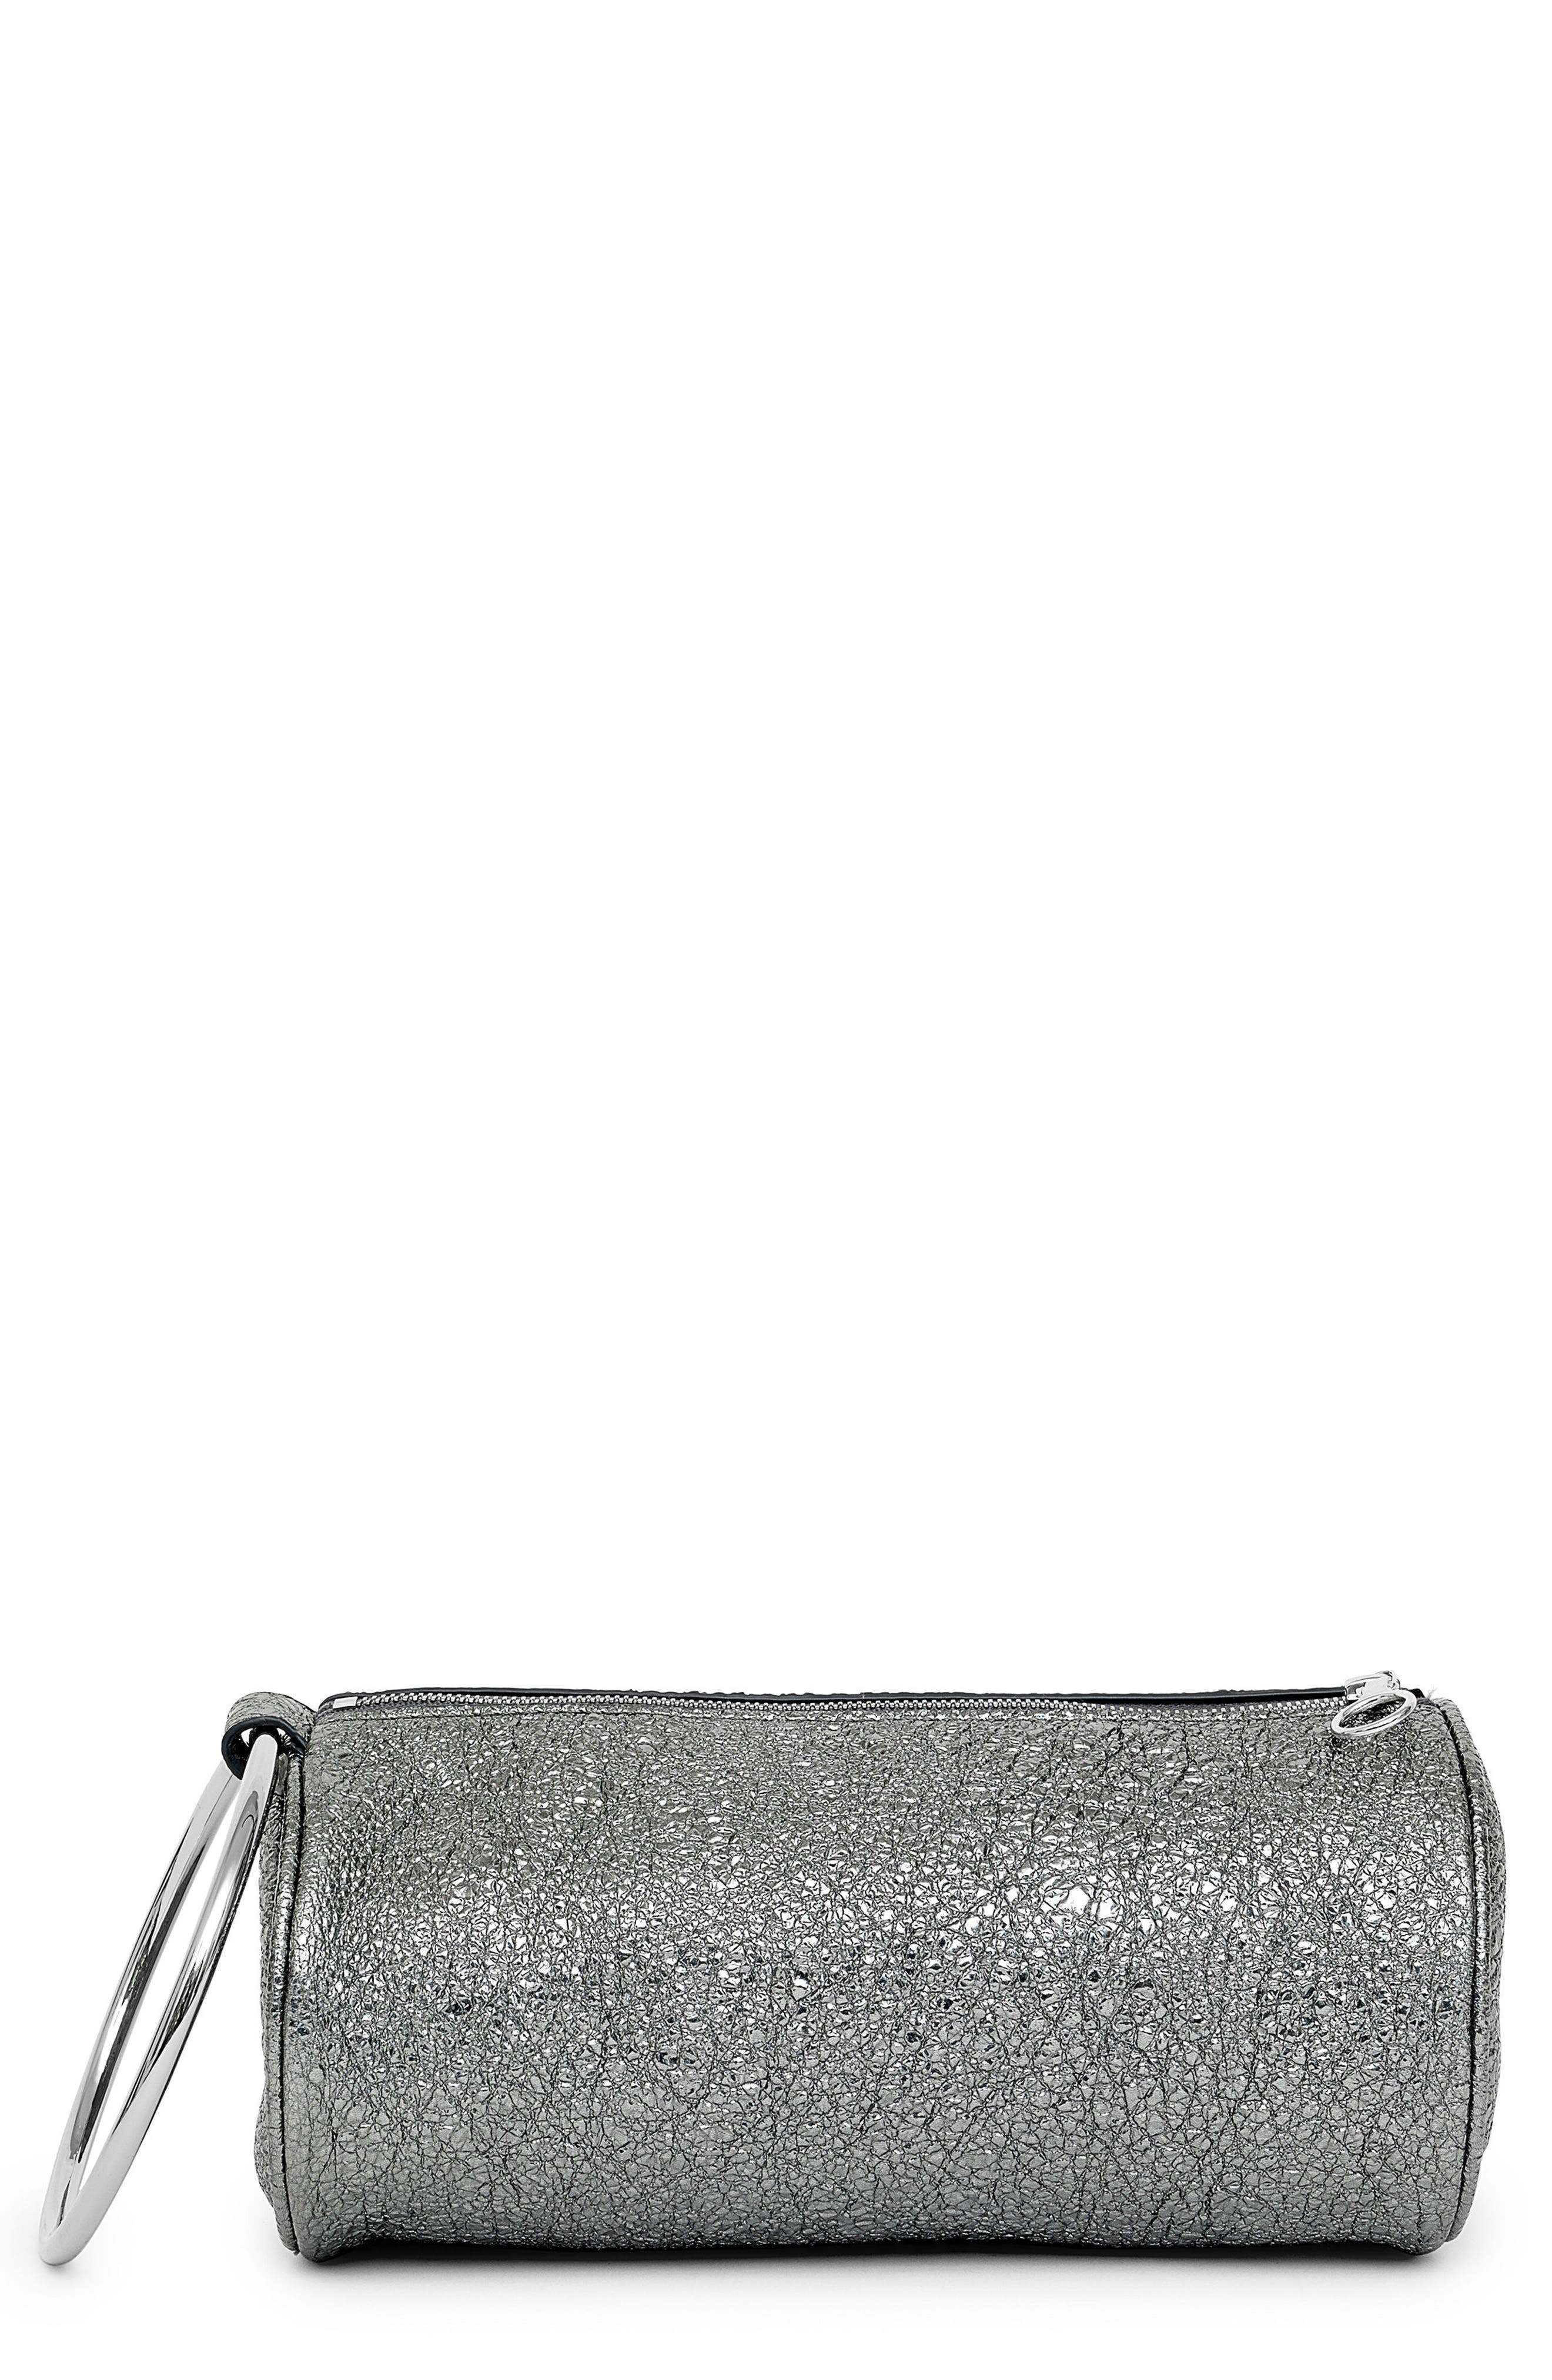 KARA Crinkled Metallic Leather Duffel Wristlet Clutch